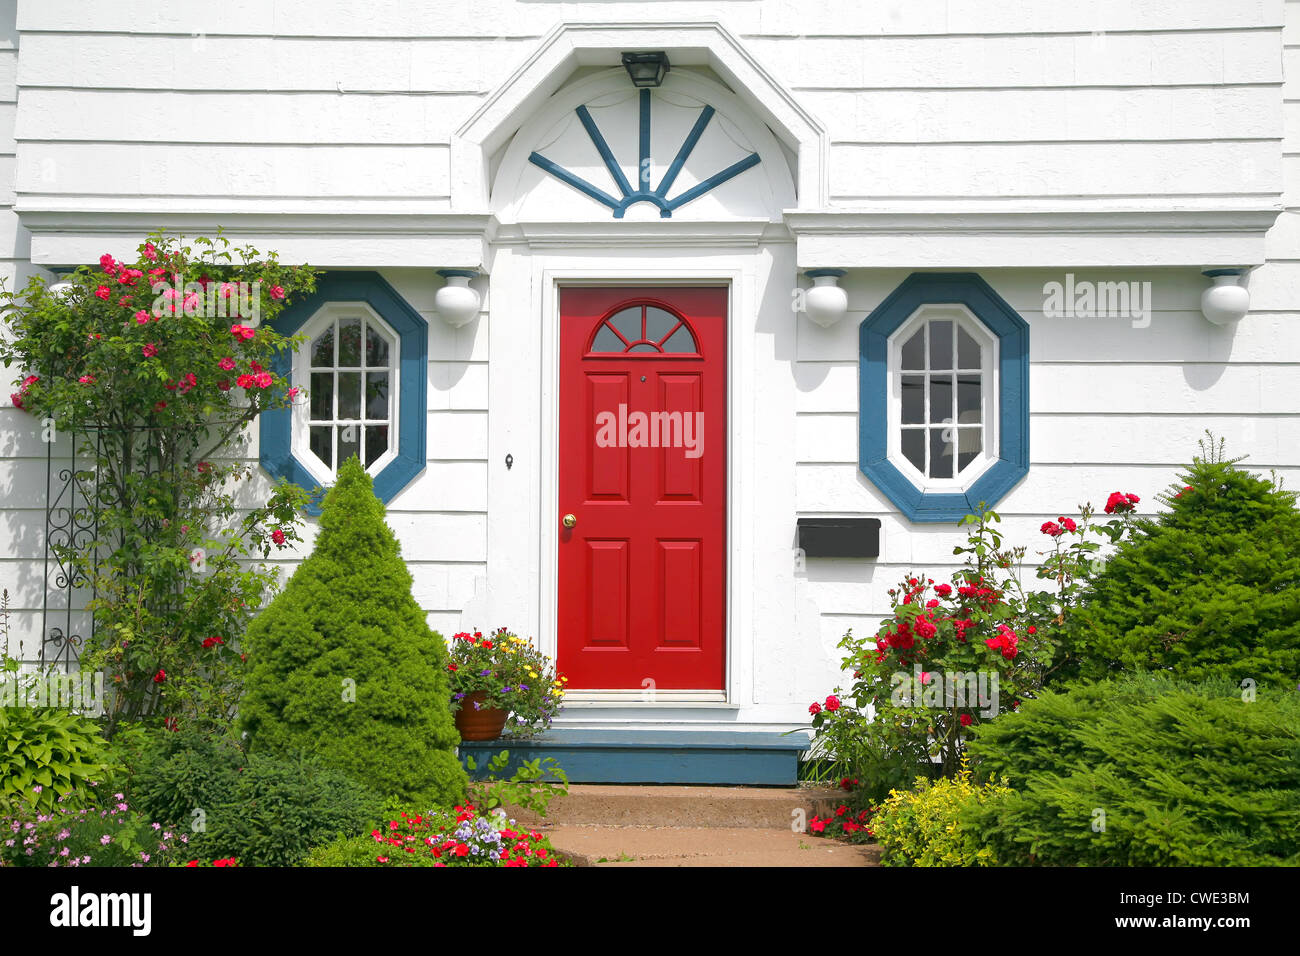 A bright red door on the entrance of a home. Stock Photo